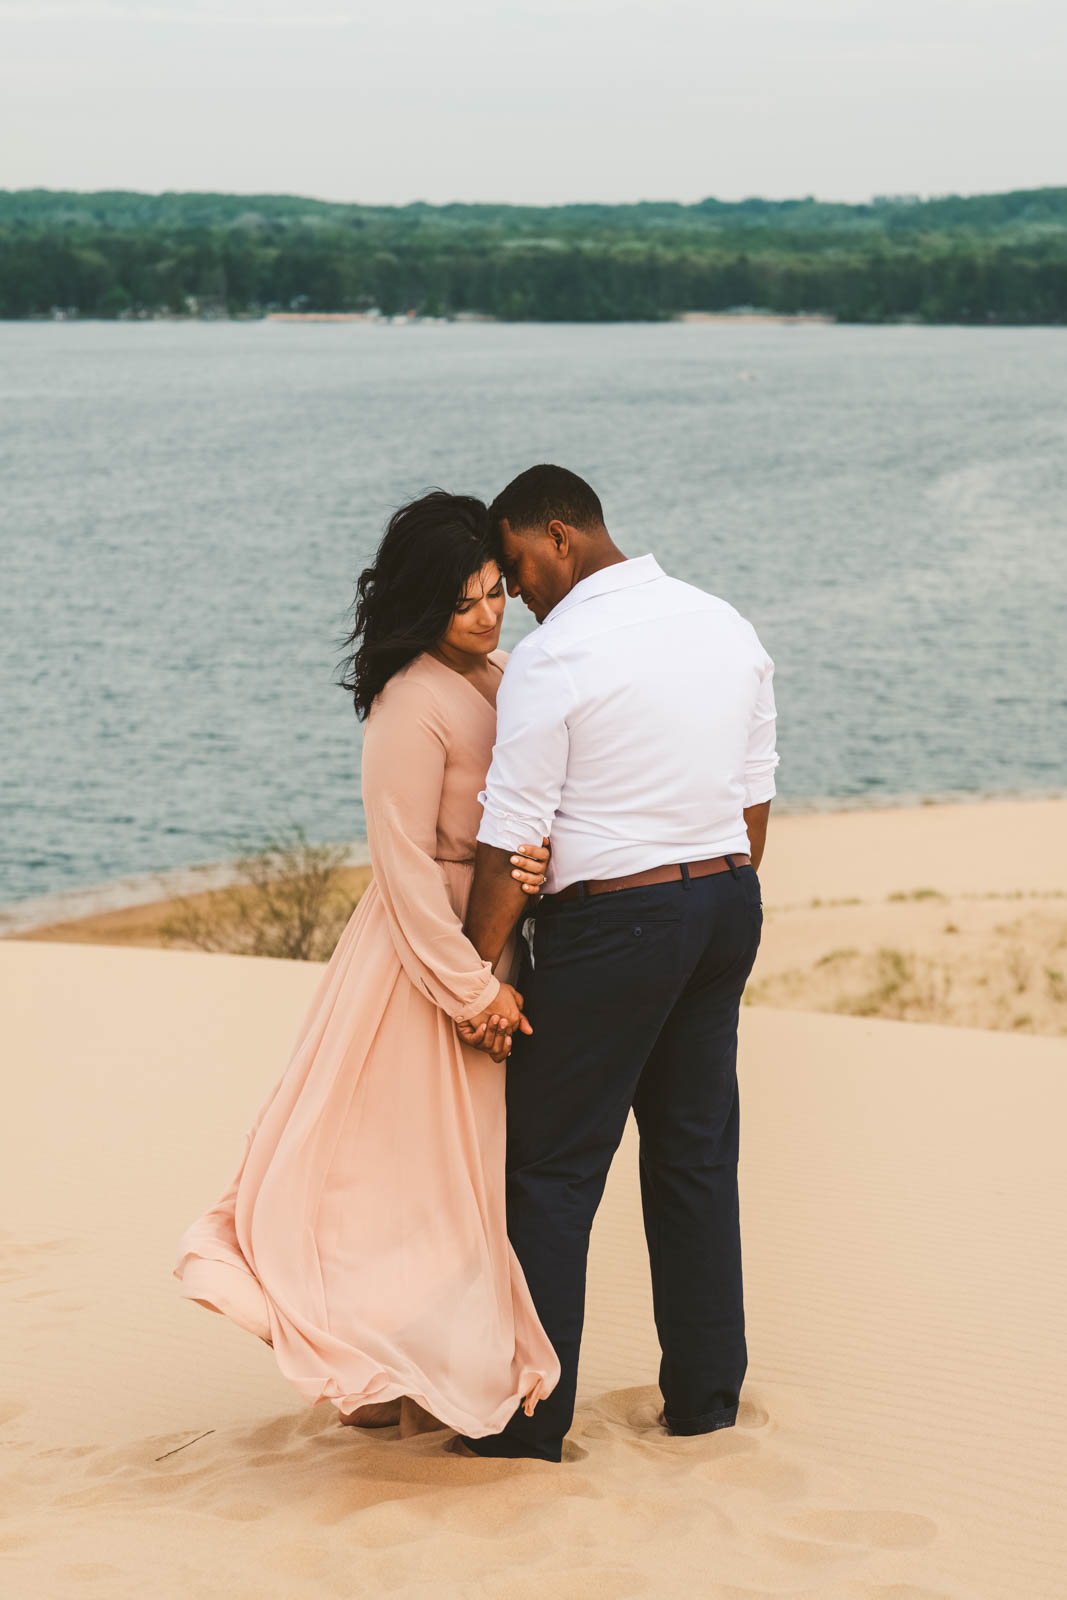 Engagement Session in Sand Dunes on the Shores of Silver Lake with Toledo Wedding Photographers